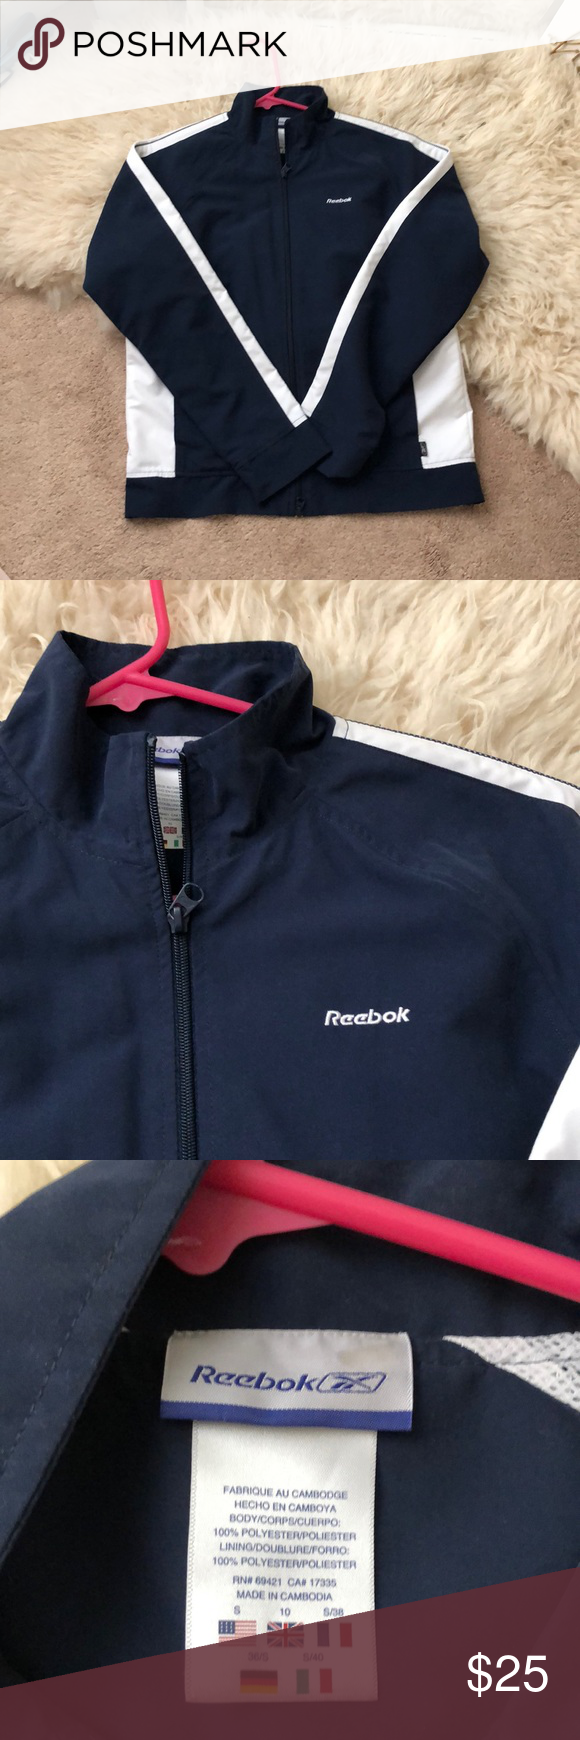 Vintage Reebok Jacket Vintage Reebok Jacket Super New And Really Comfy Windbreaker Material Discontinued Reebok J Jackets Athletic Jacket Clothes Design [ 1740 x 580 Pixel ]